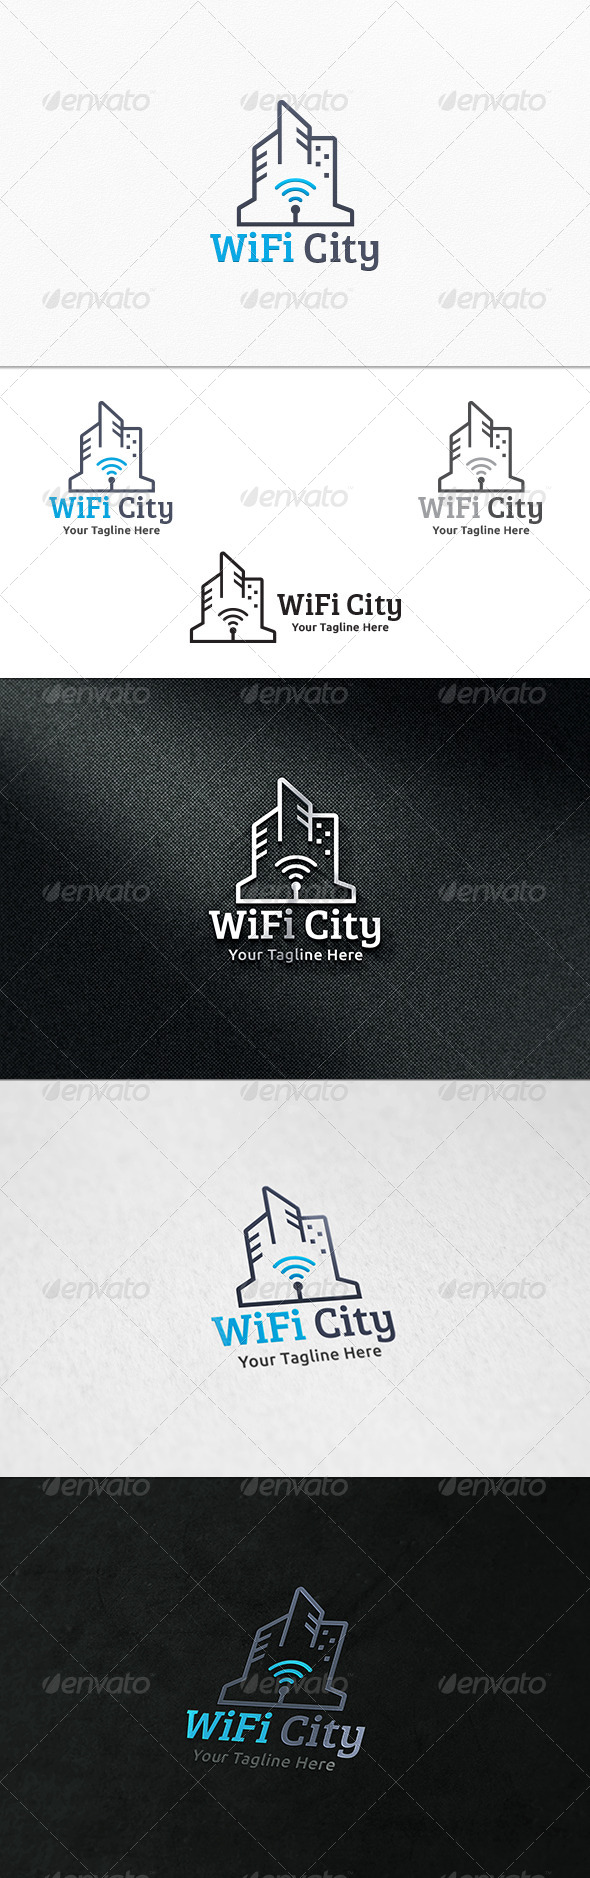 GraphicRiver WiFi City Logo Template 7314380